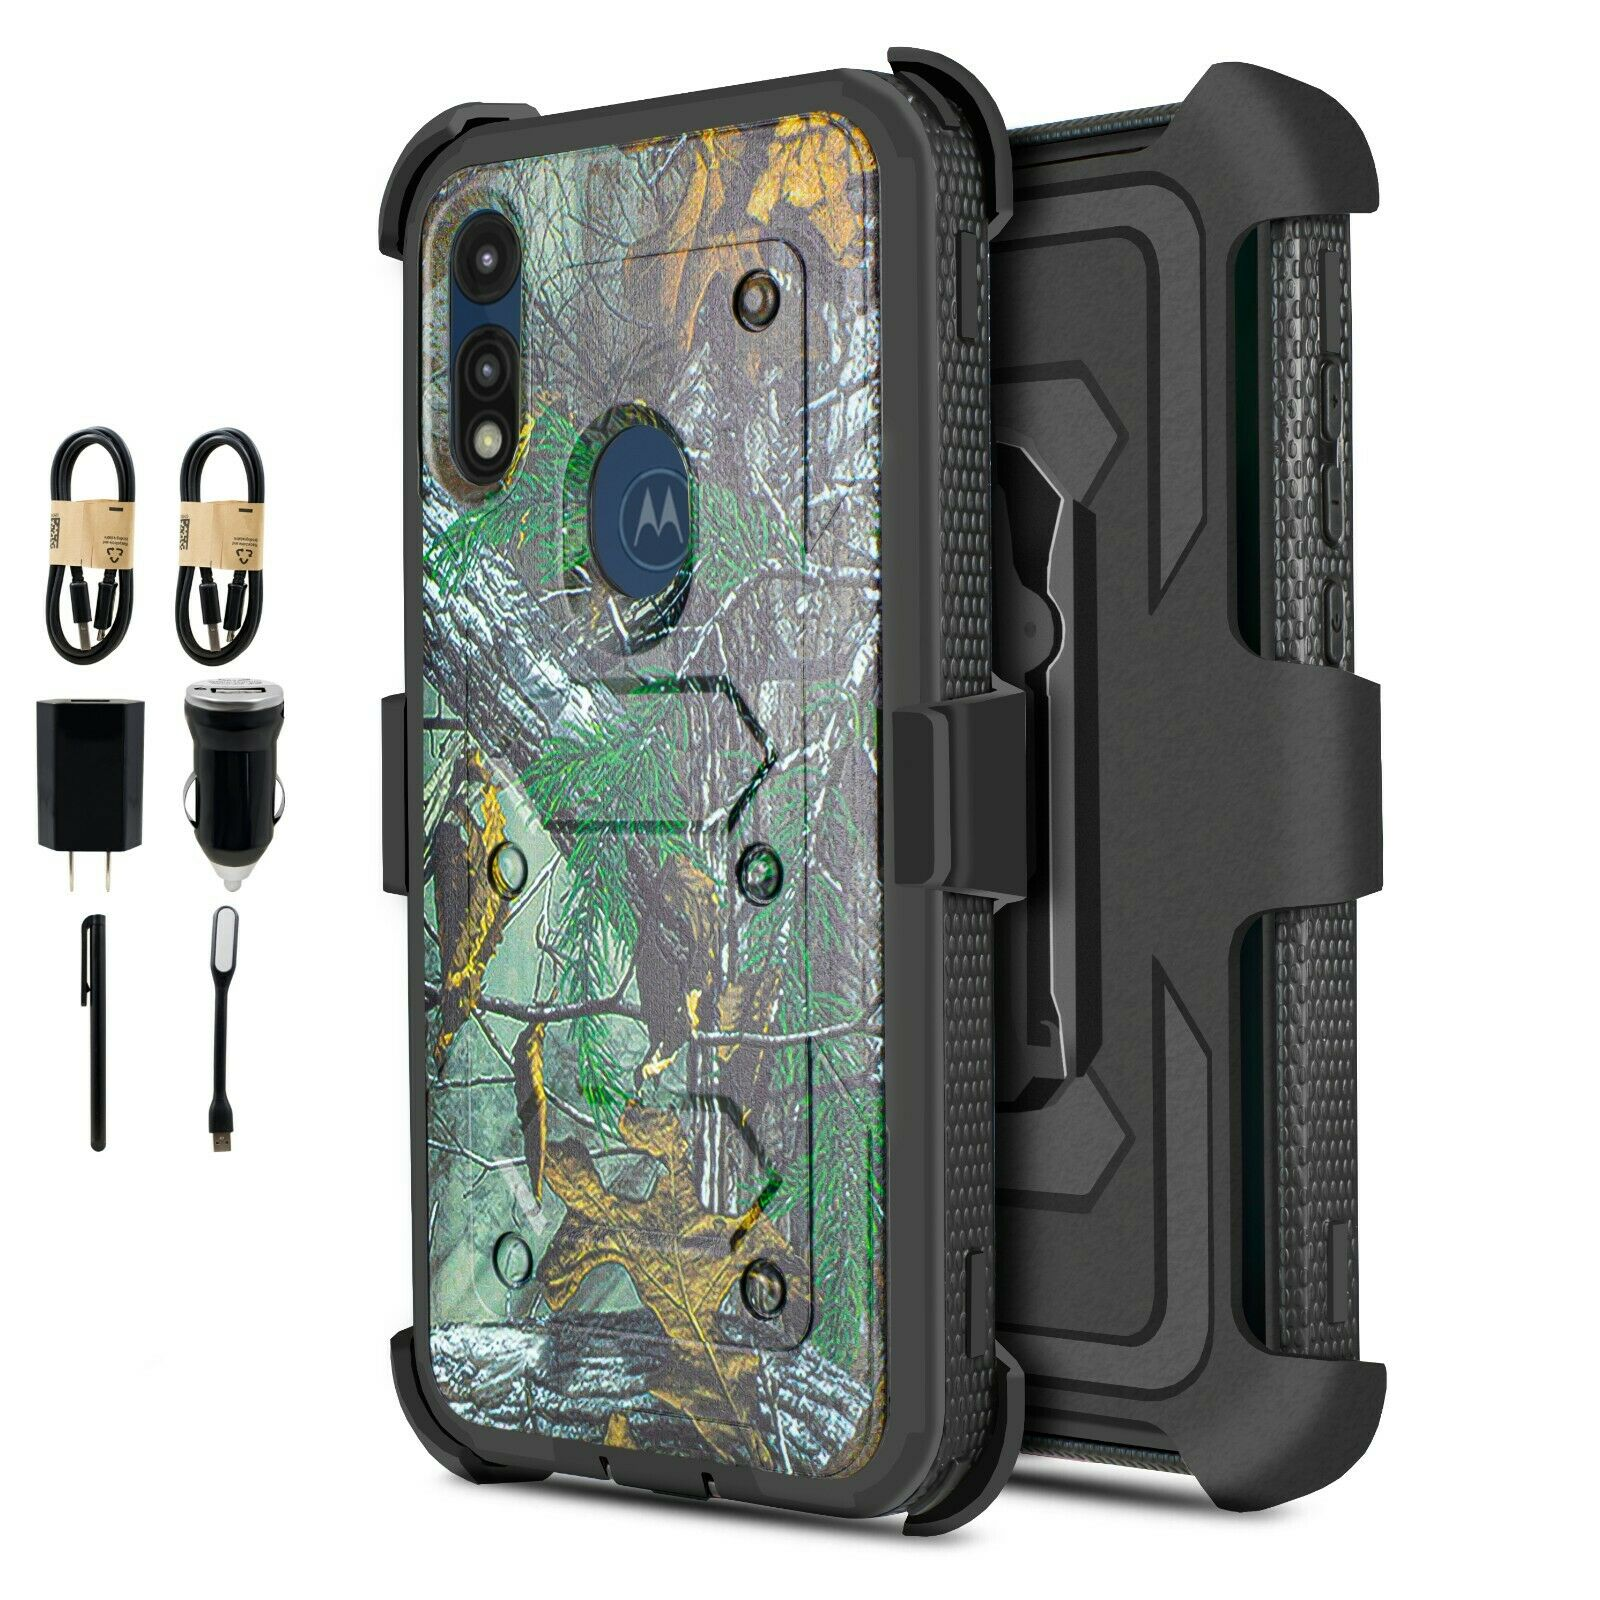 Ankoe for Moto E 2020 Belt Case Combo Shell Holder for Motorola Moto E 2020 // E7 Case Moto E7 case Super Slim Hard Shell Layer Holster Sport Case with Belt Clip and Holster Kickstand Camo